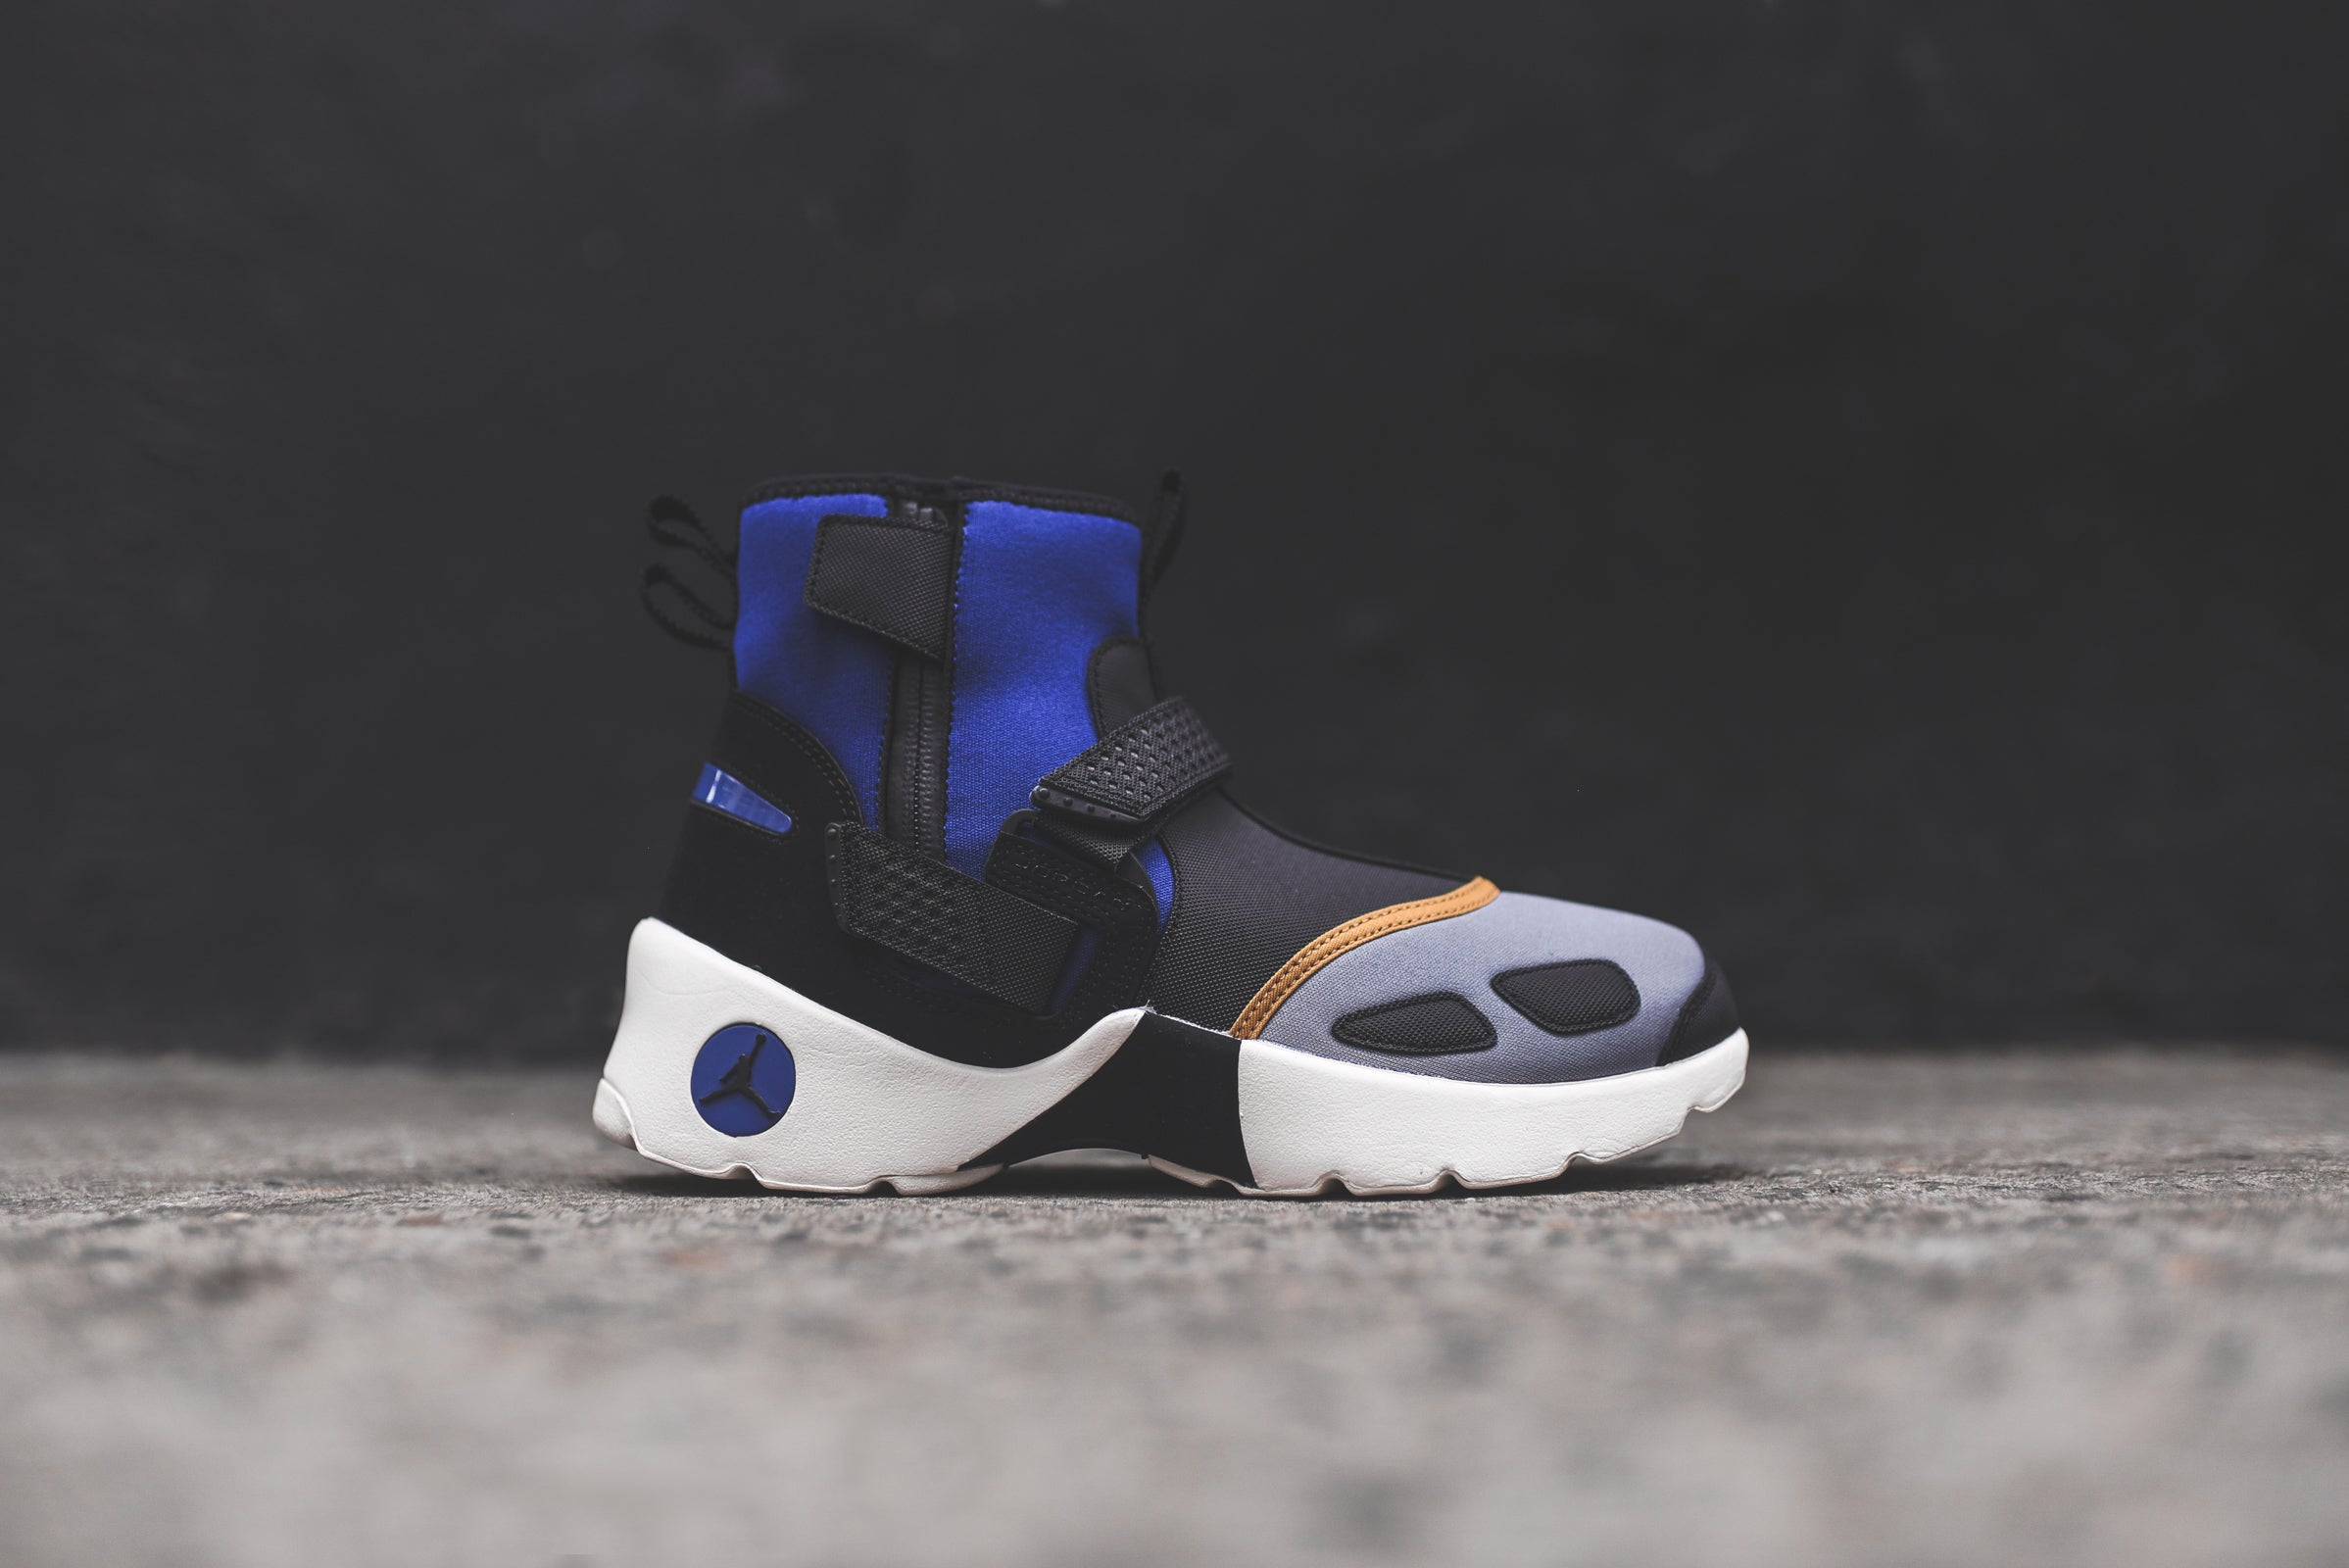 Nike Air Jordan Trunner LX High NRG - Black / Blue